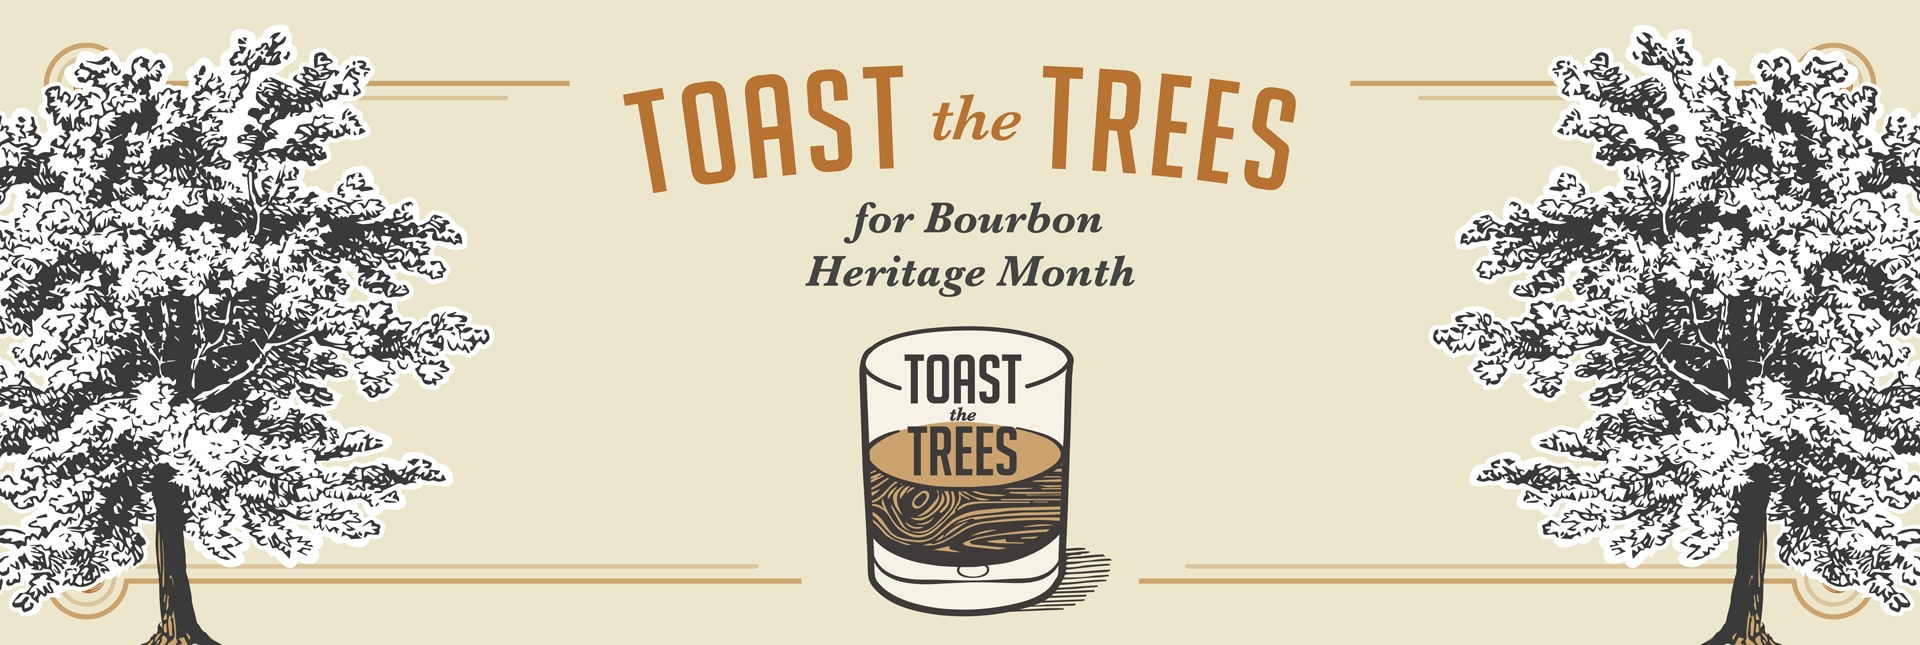 Toast the Trees for Bourbon Heritage Month